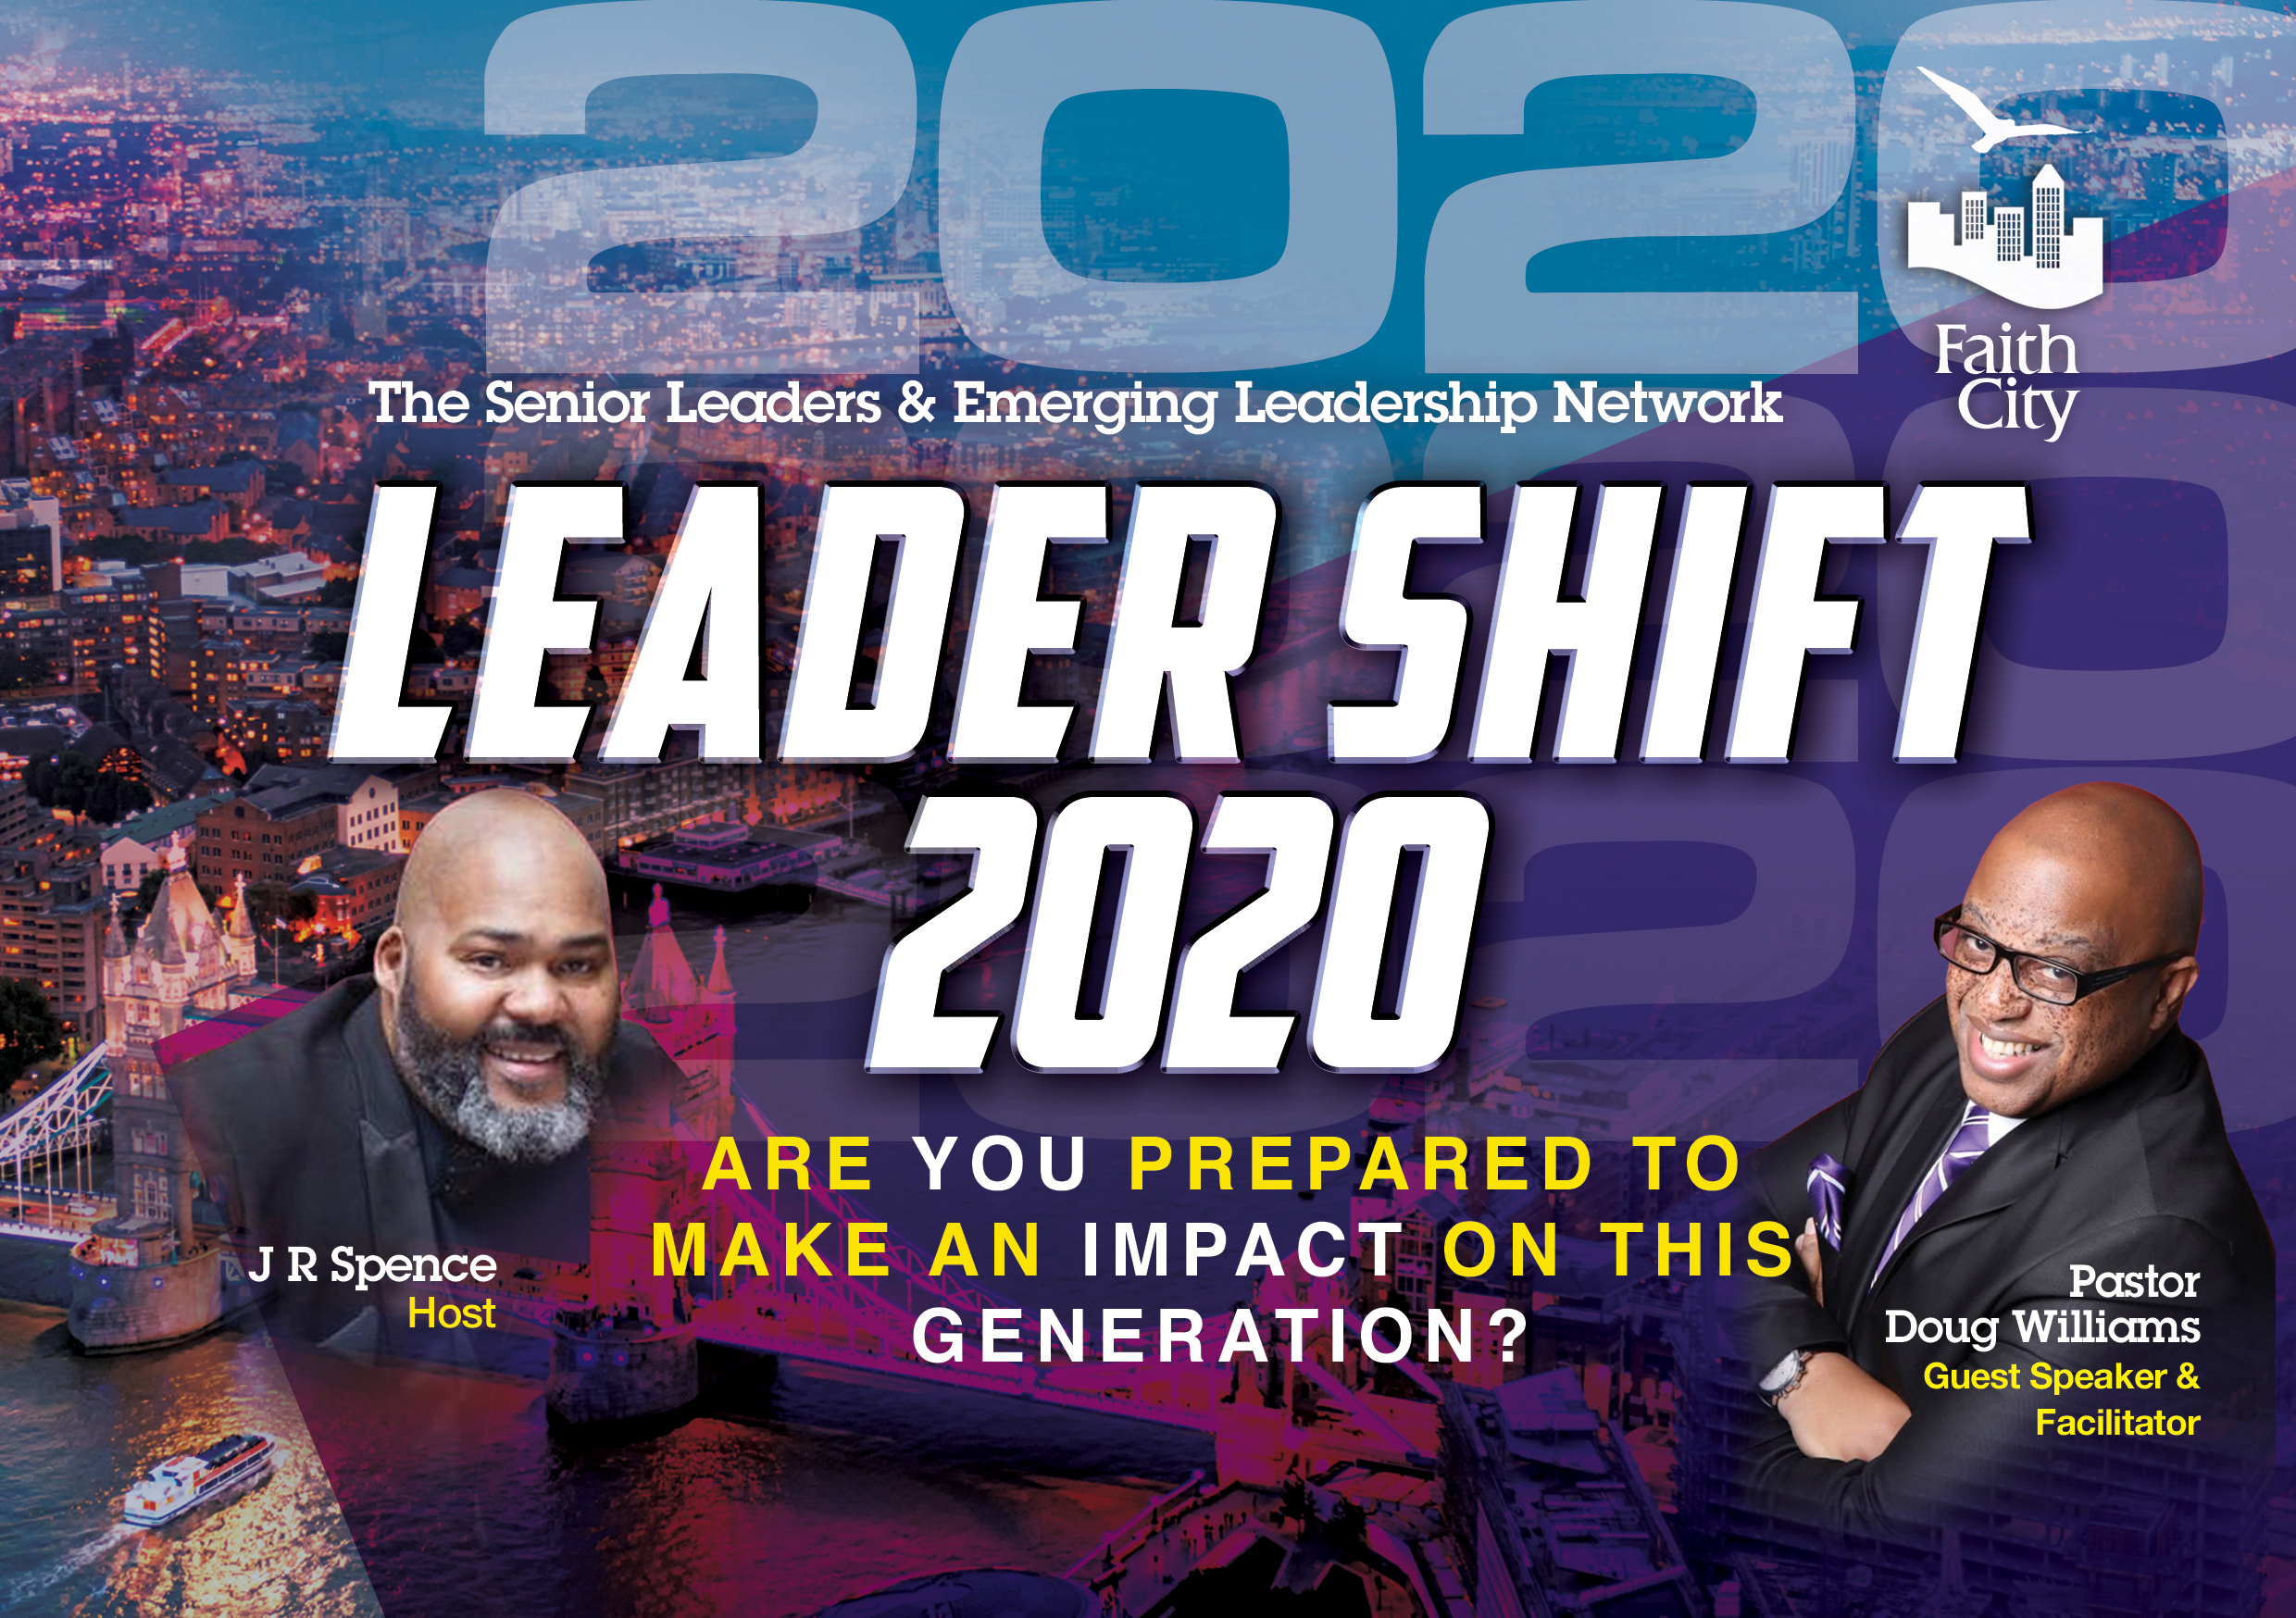 Leader Shift 2020